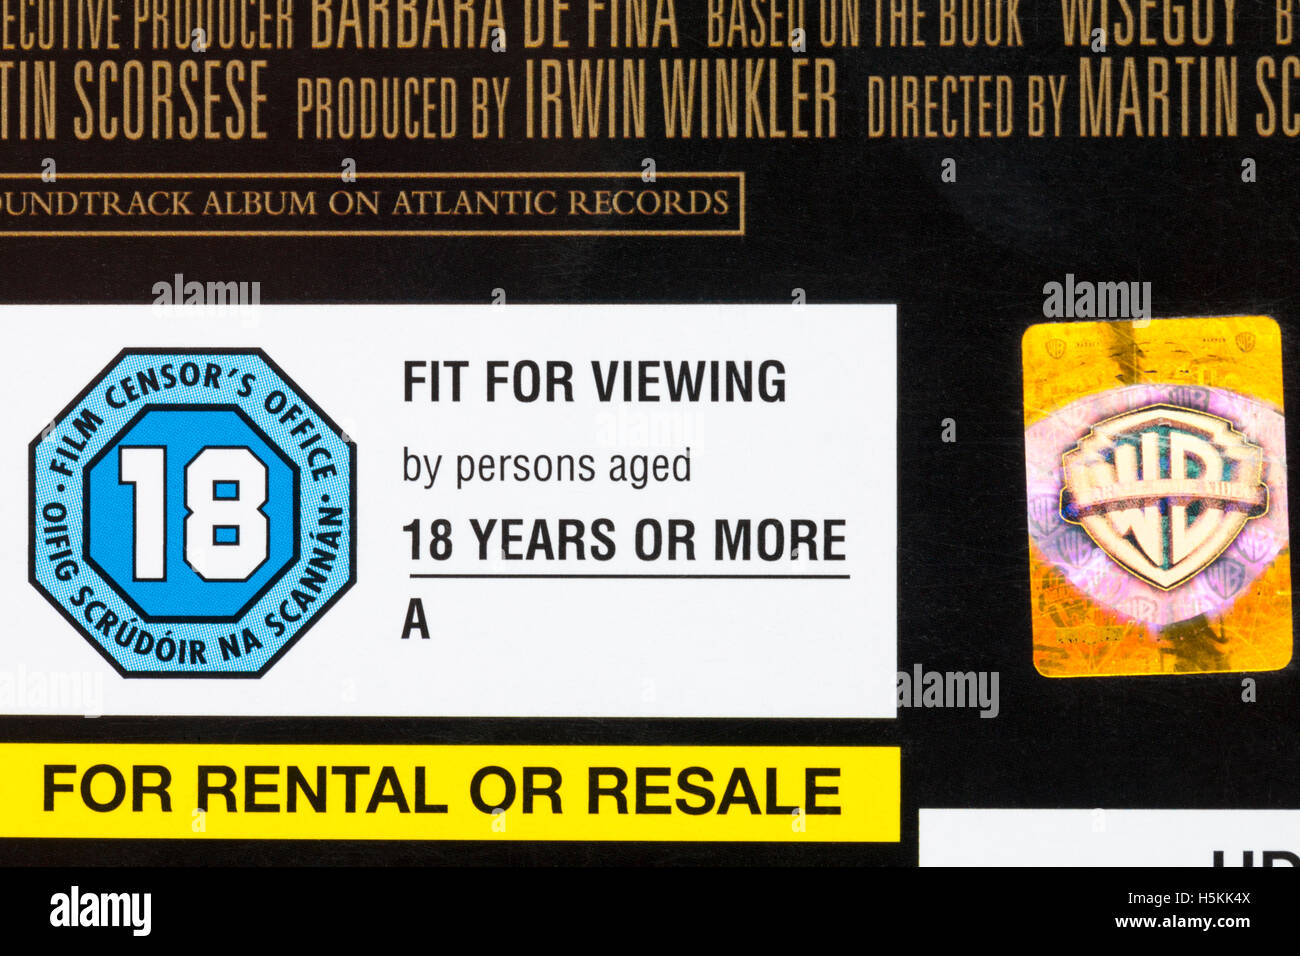 18 rating on HD DVD case - fit for viewing by persons aged 18 years or more - for rental or resale - Stock Image